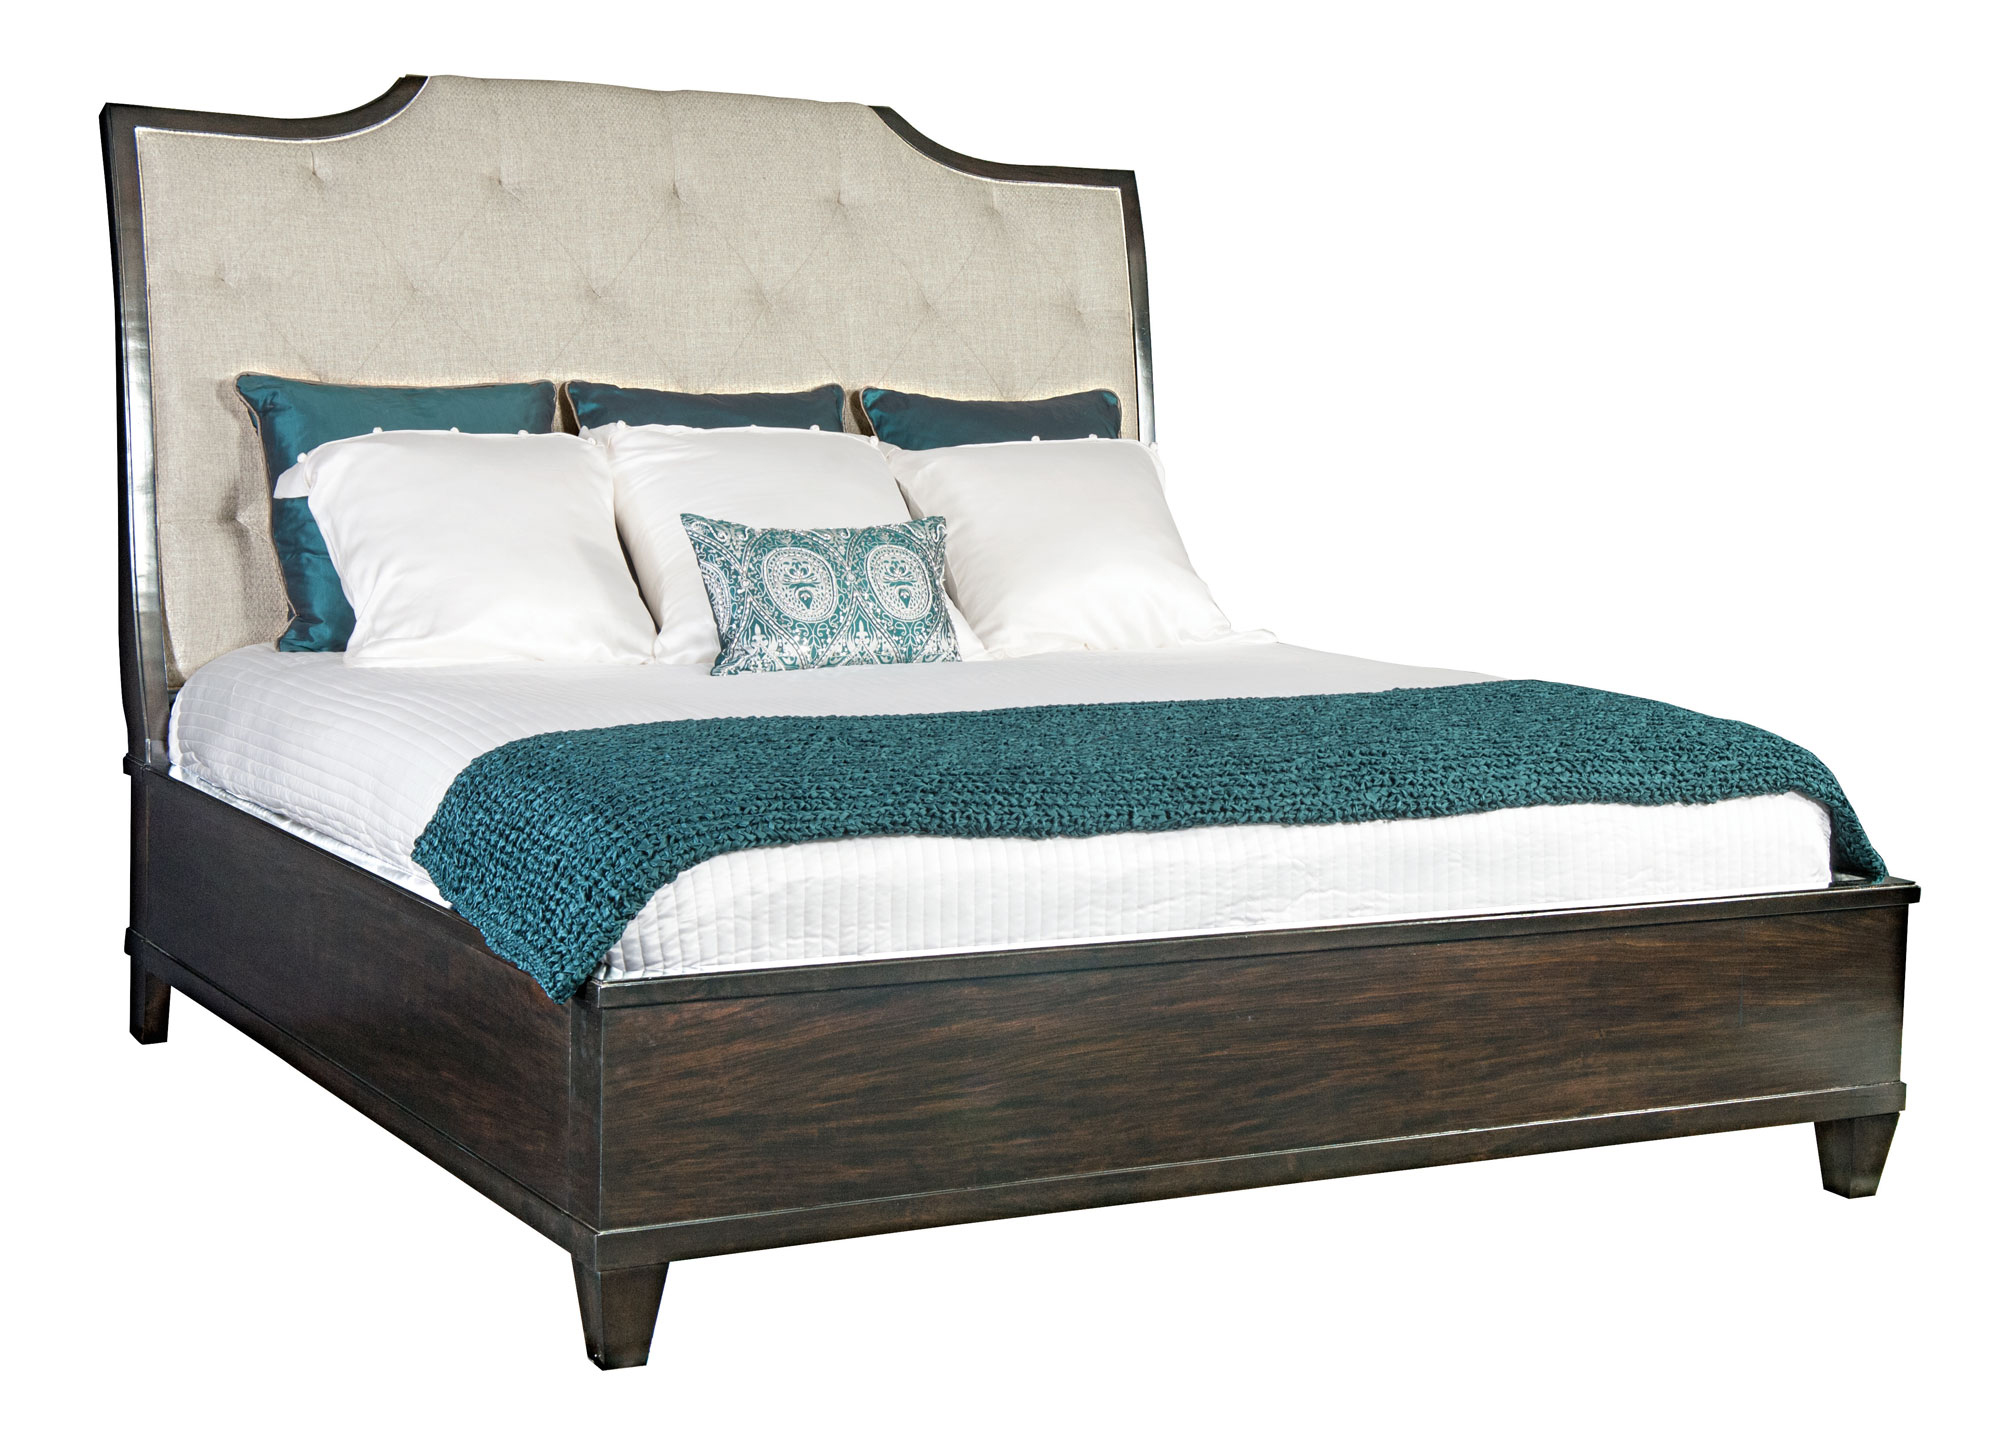 upholstered sleigh bed bernhardt. Black Bedroom Furniture Sets. Home Design Ideas